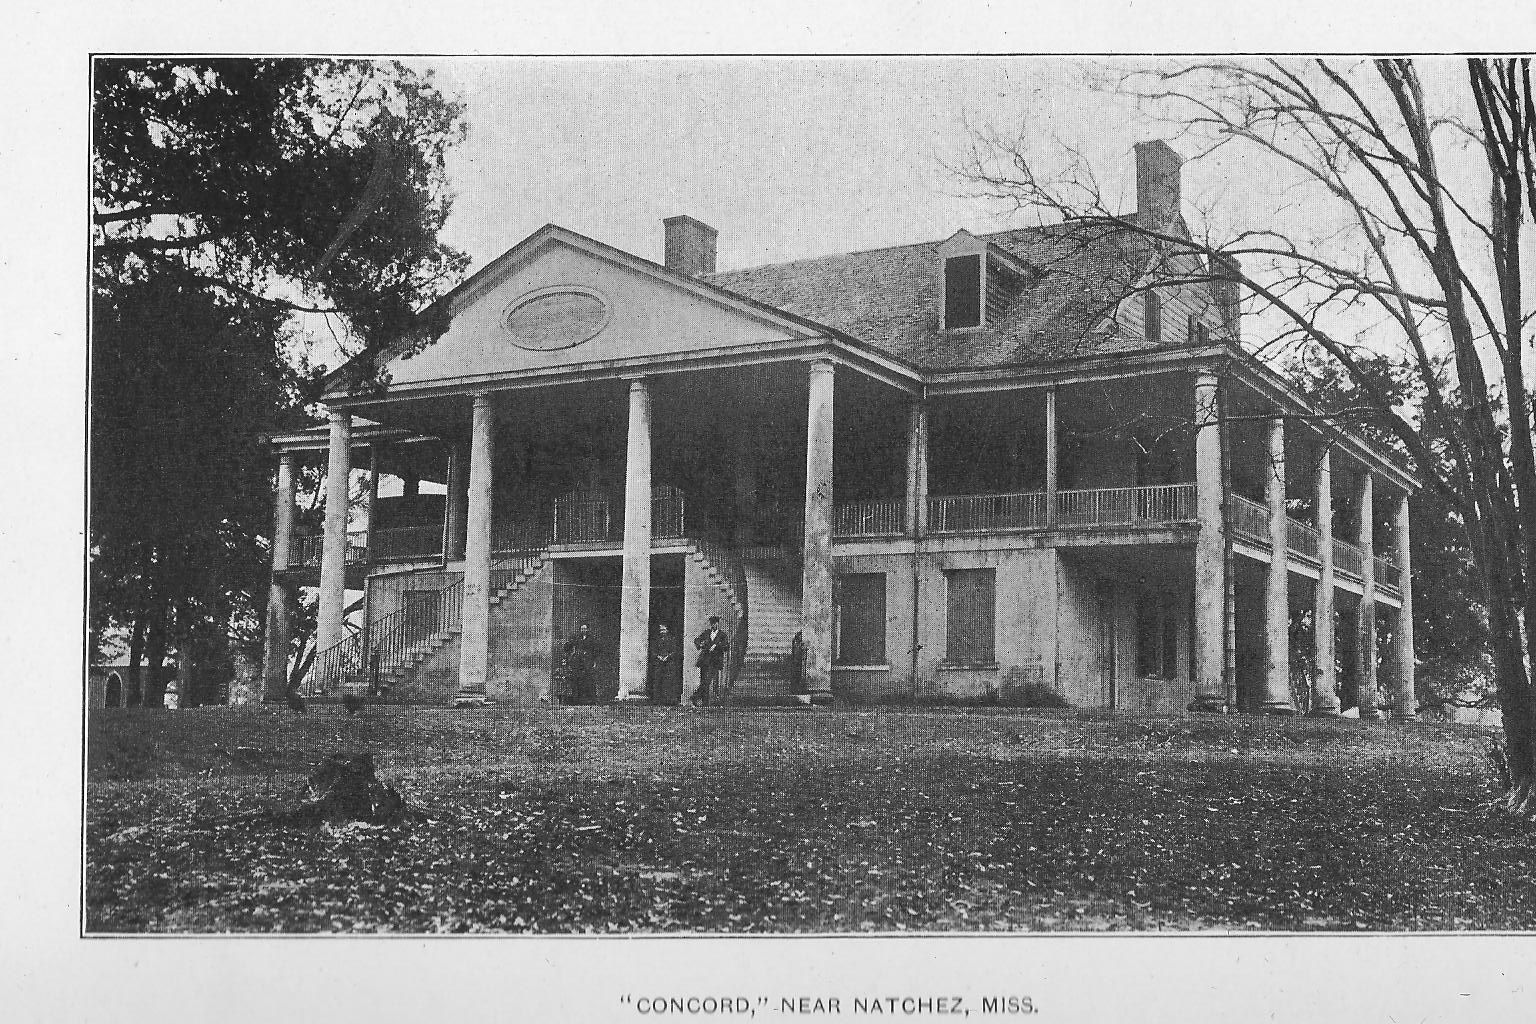 Concord 1787 -- near Natchez, Mississippi Spanish colonial ... on governors house, indians house, mills house, plantation style house, colonists house, plantation masters house, country plantation house, plants house, french plantation house, planters house,